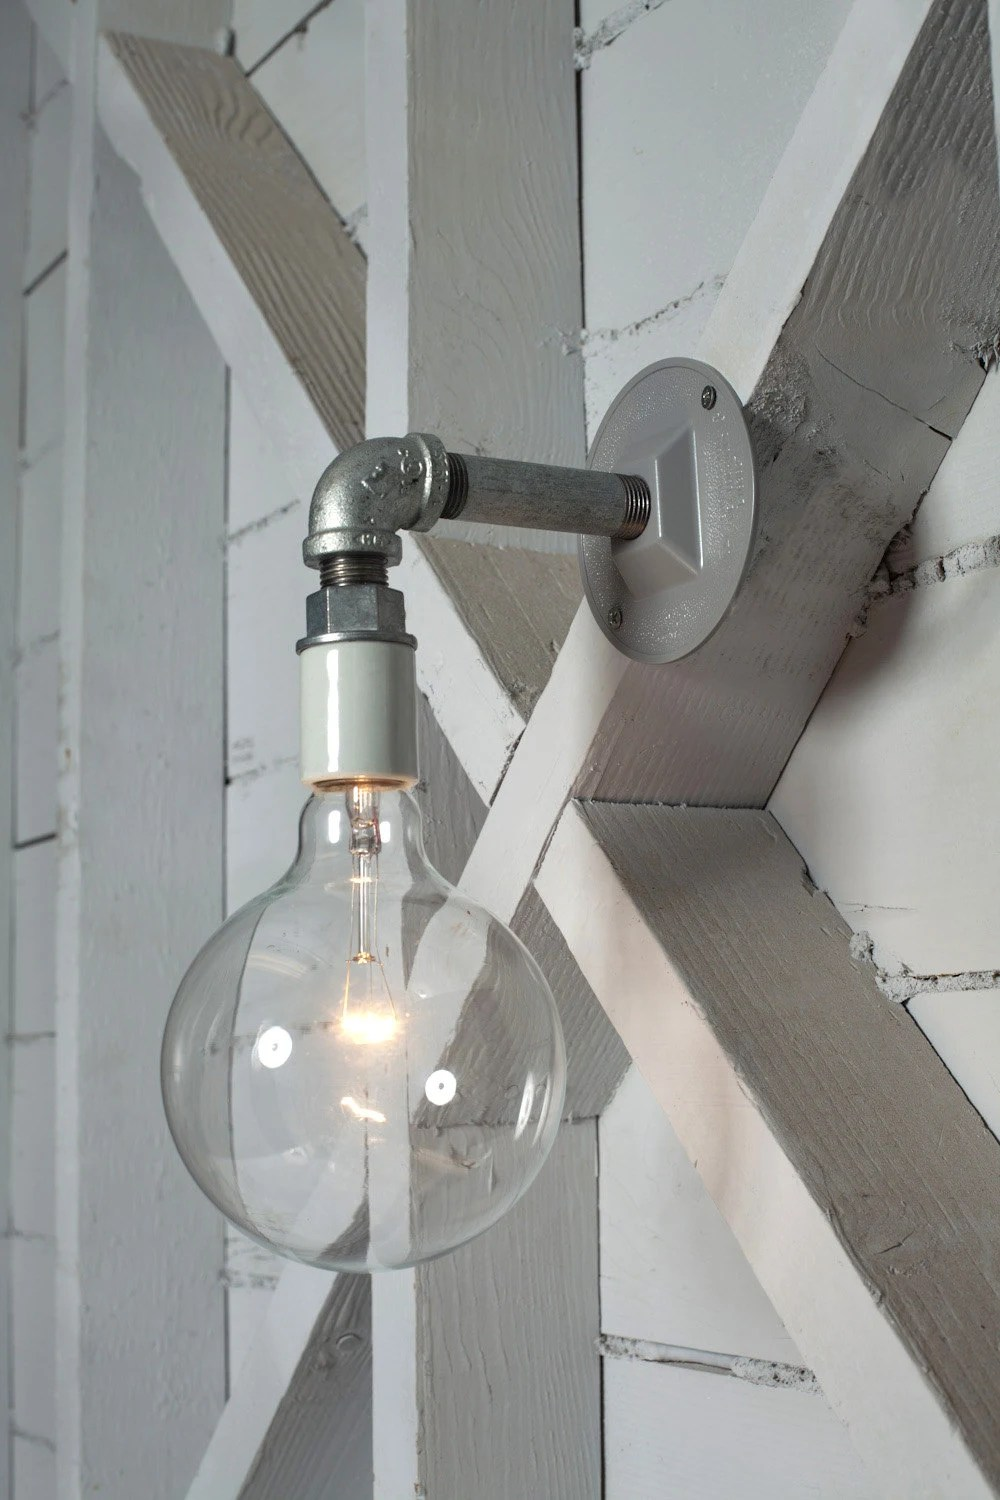 Wall Sconce Lights That Plug In Industrial Wall Sconce Light Bare Bulb Pipe Lamp